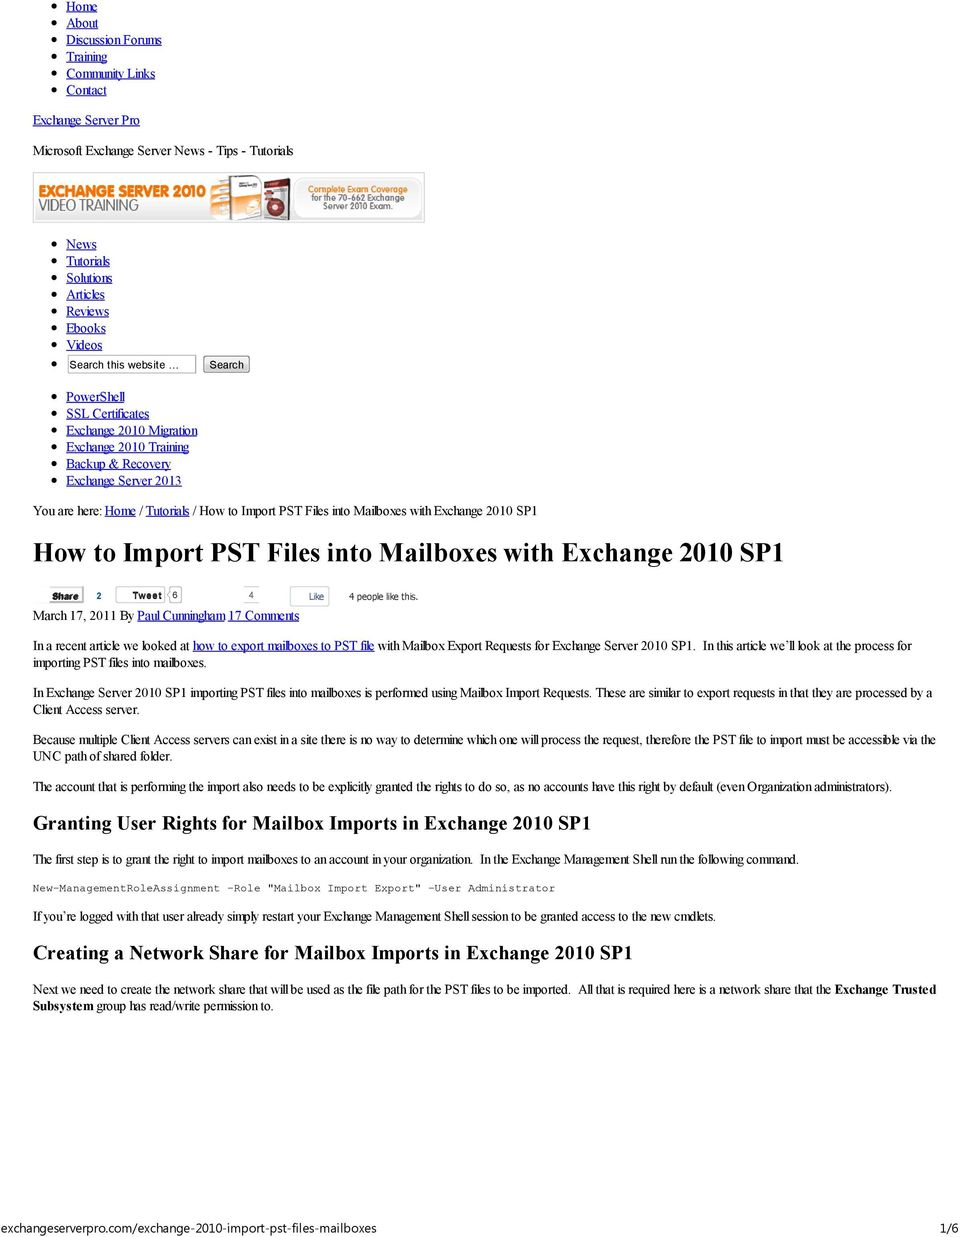 How to Import PST Files into Mailboxes with Exchange 2010